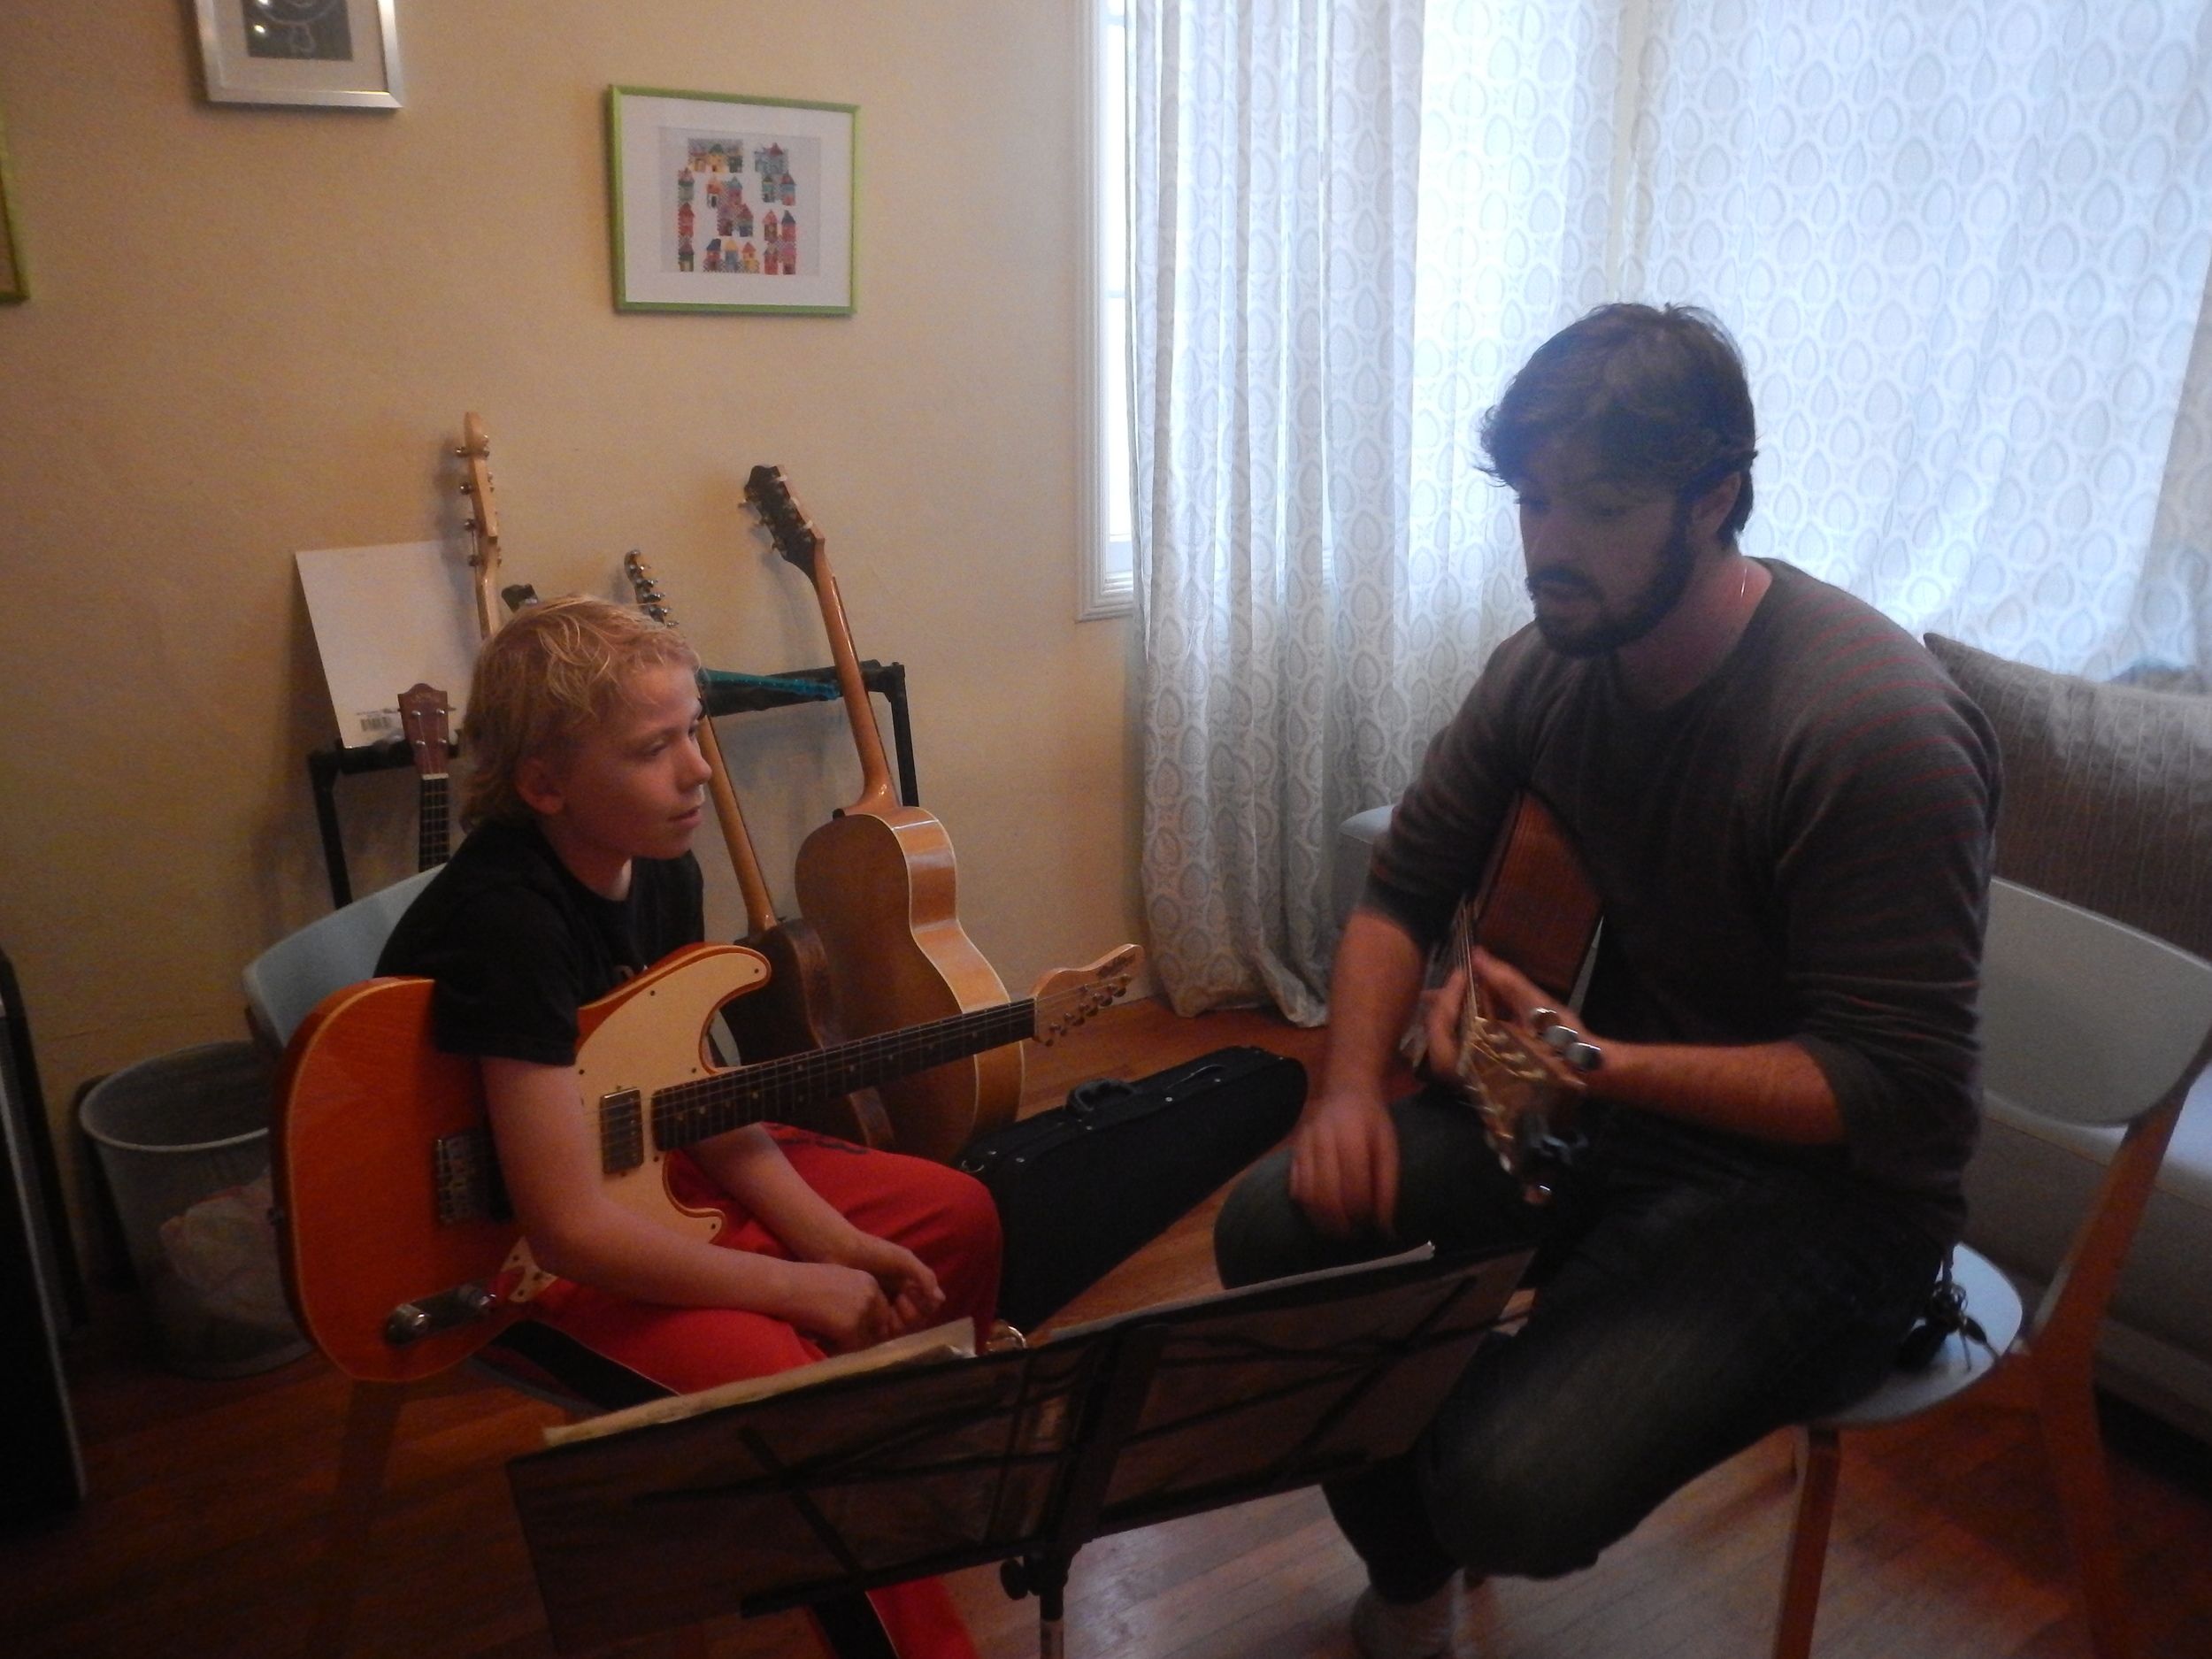 """""""Rory has been teaching my 8 year old son Oliver guitar for quite some time. Rory's teaching style is gentle, clear and fun. Oliver looks forward to his lessons every week and is making great progress in learning his instrument. Also for you parents, Rory is prompt, organized, professional and super convenient (he makes house calls!)."""" ---  Tom Heinz"""